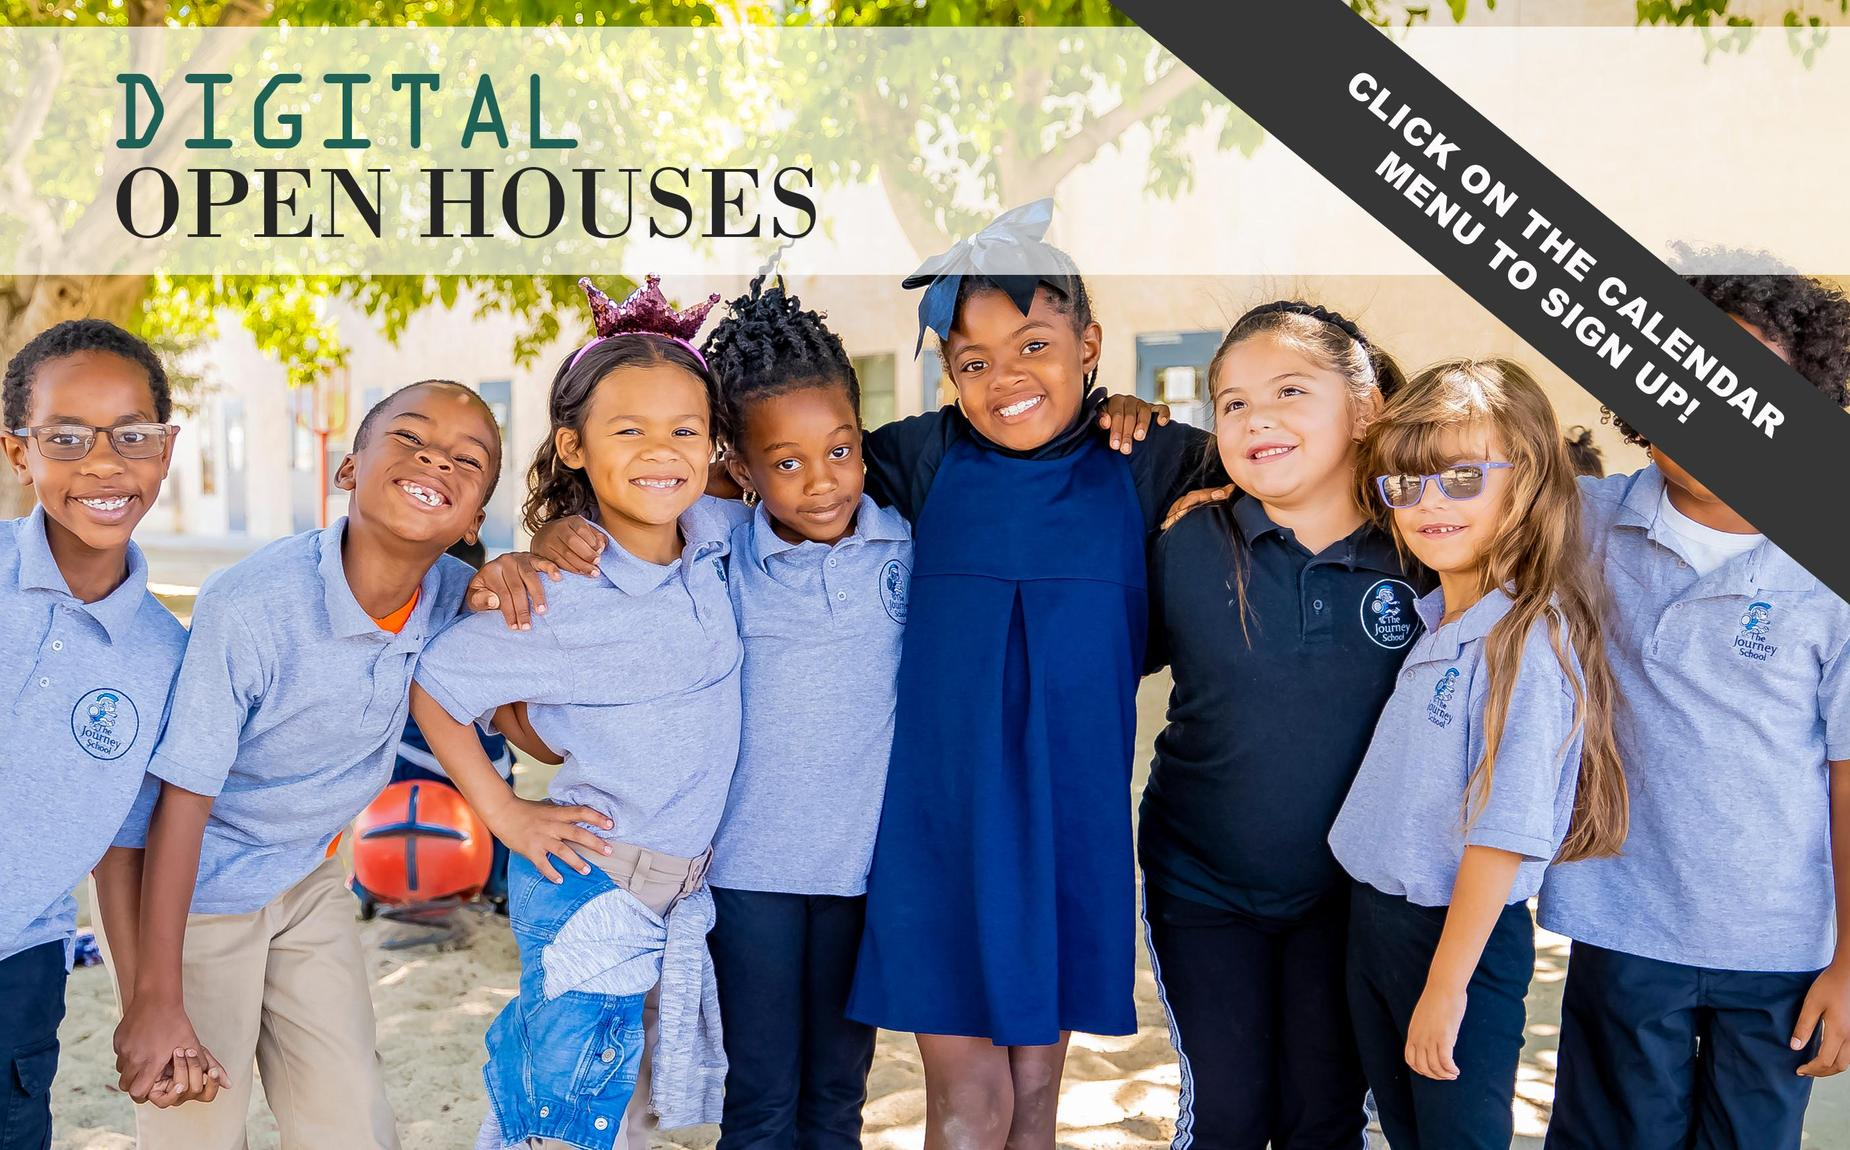 Digital Open Houses flyer with background picture of 8 students leaning in and smiling for a picture while on the school yard. Flyer says